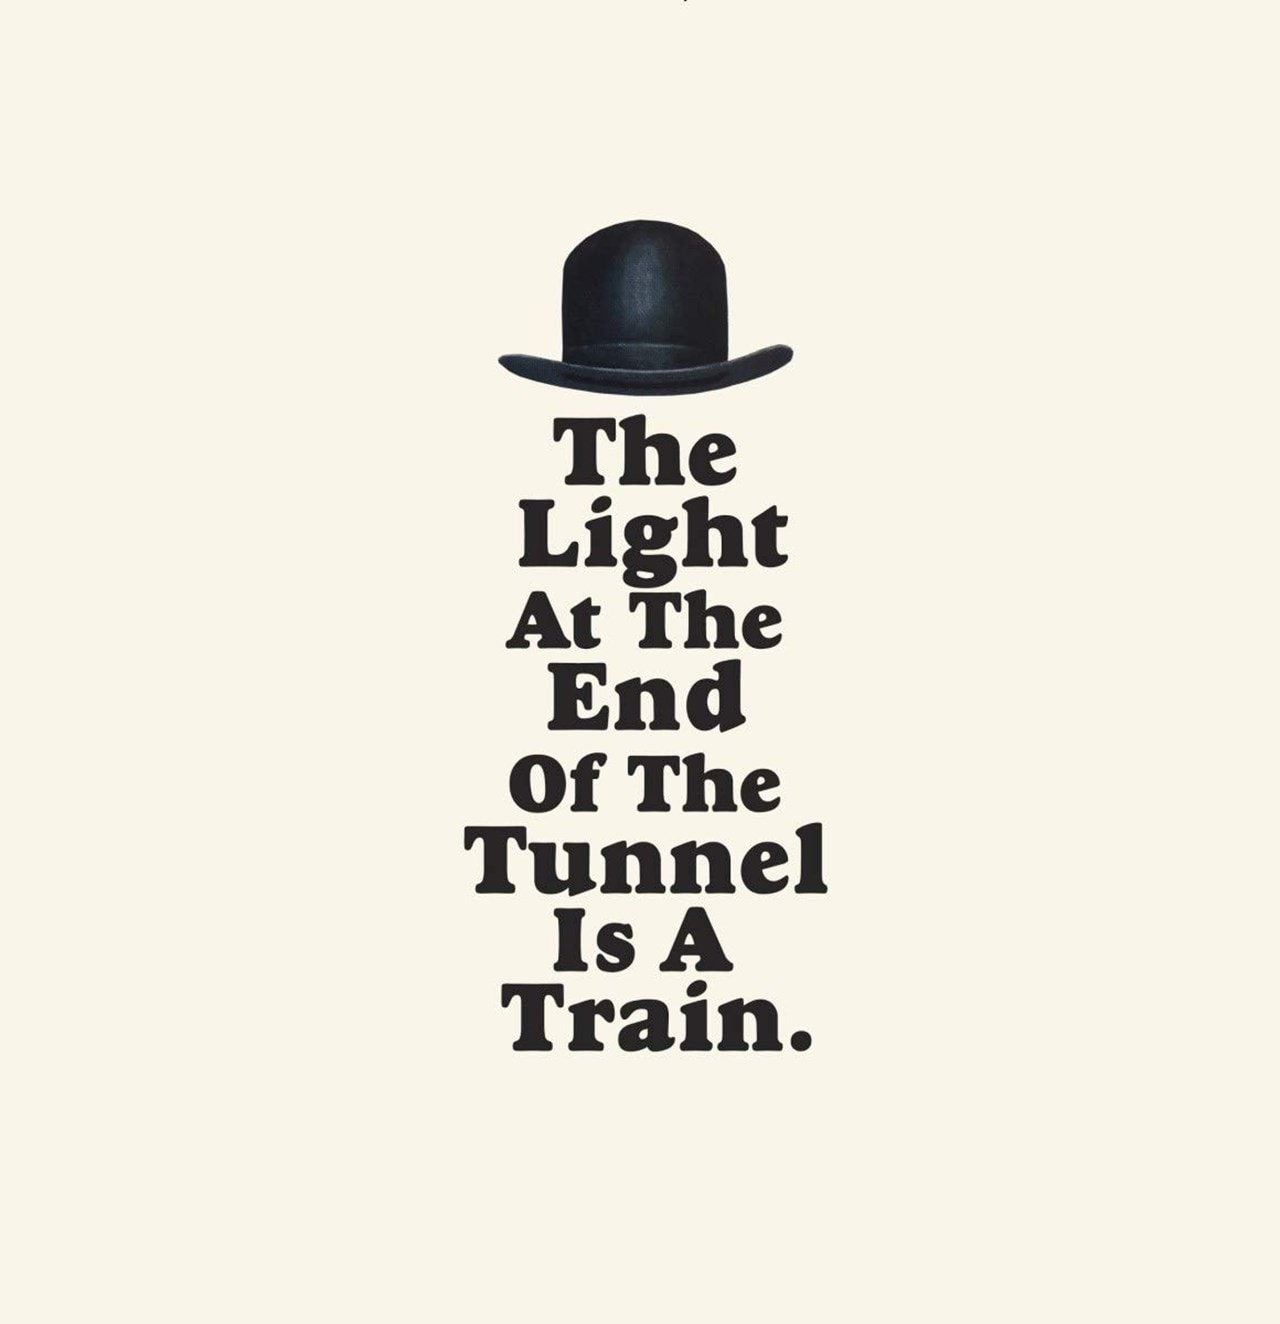 The Light at the End of the Tunnel Is a Train. - 1